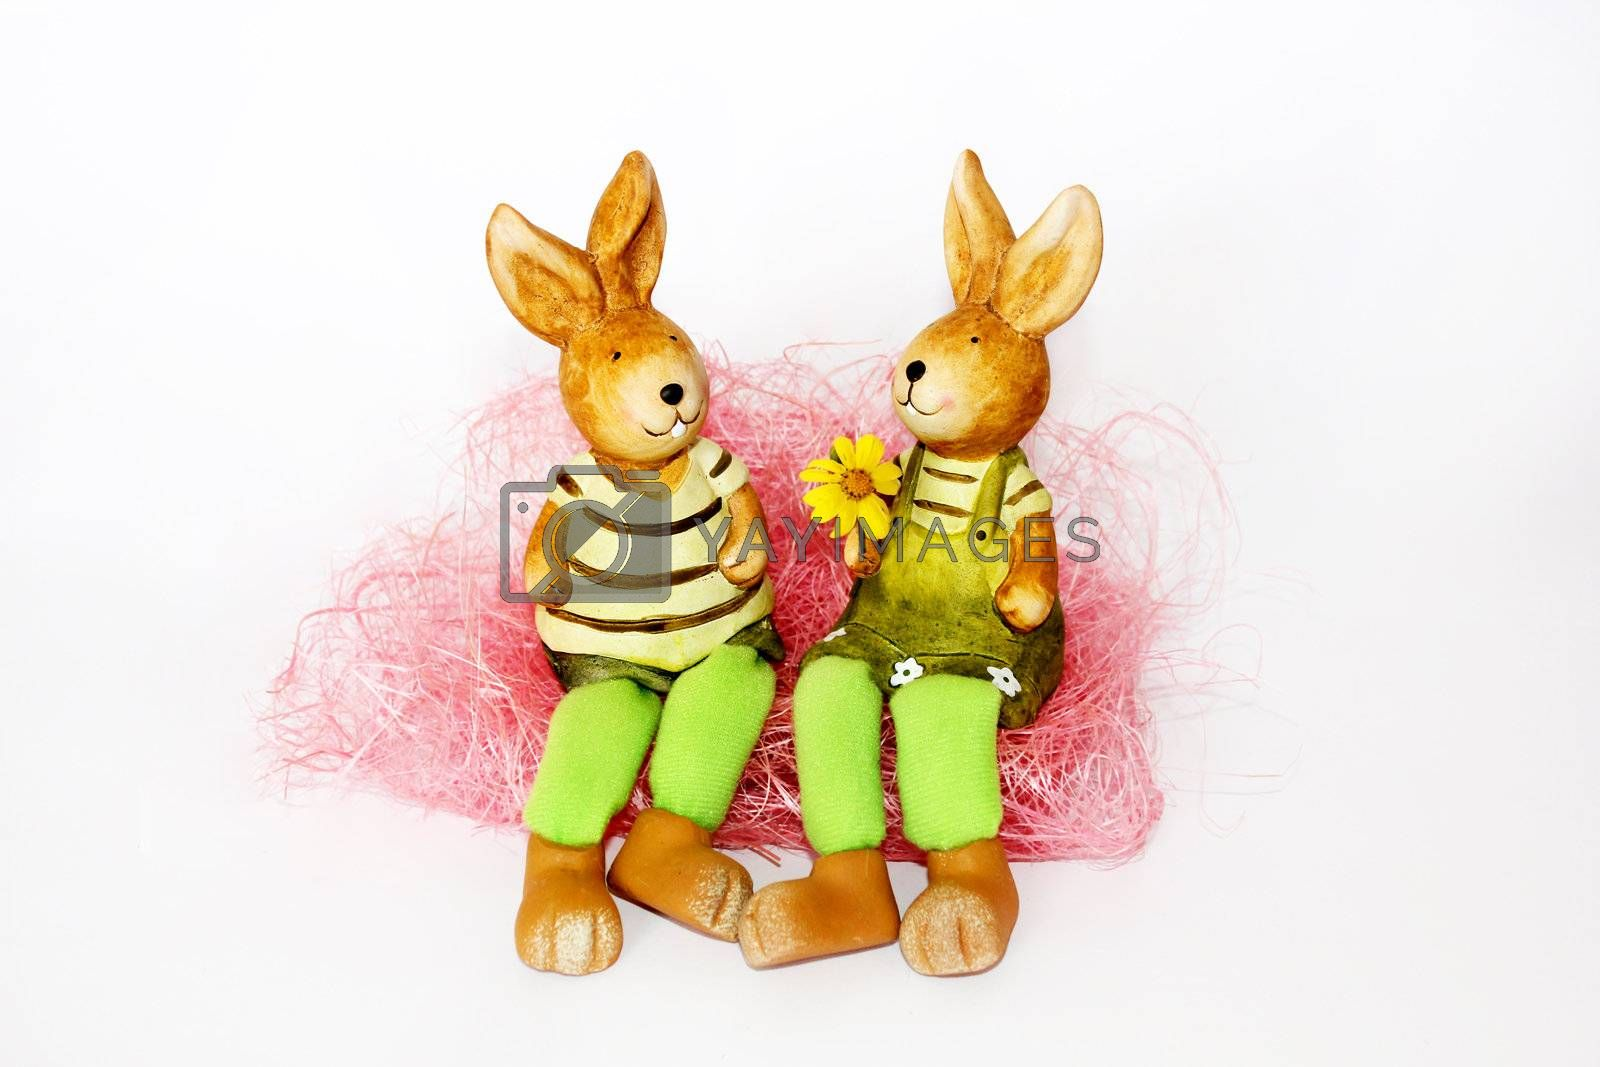 toy Easter rabbits on white background